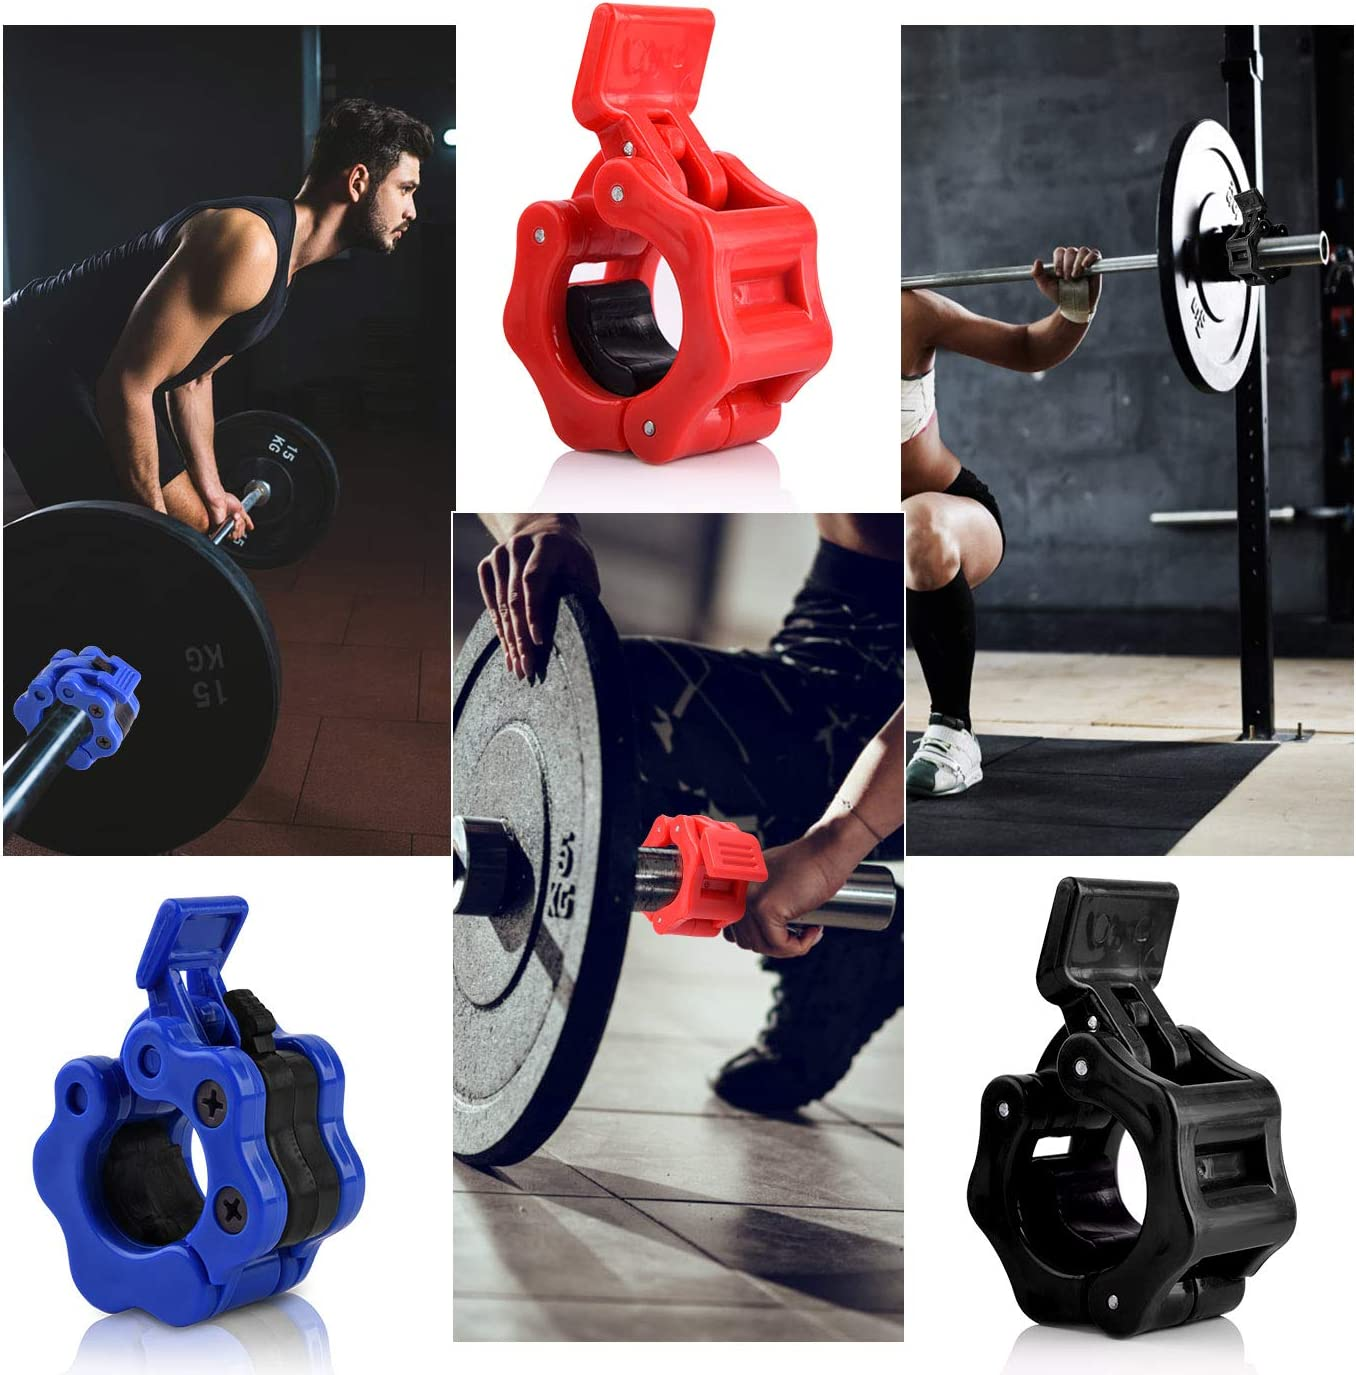 QUACOWW 6 PCS 1 Inch Barbell Clamps Non-Slip Olympic Collars Quick Release Barbell Lock Clamp Locking Collar Clip Kit for Weight Lifting Black, Red,Blue